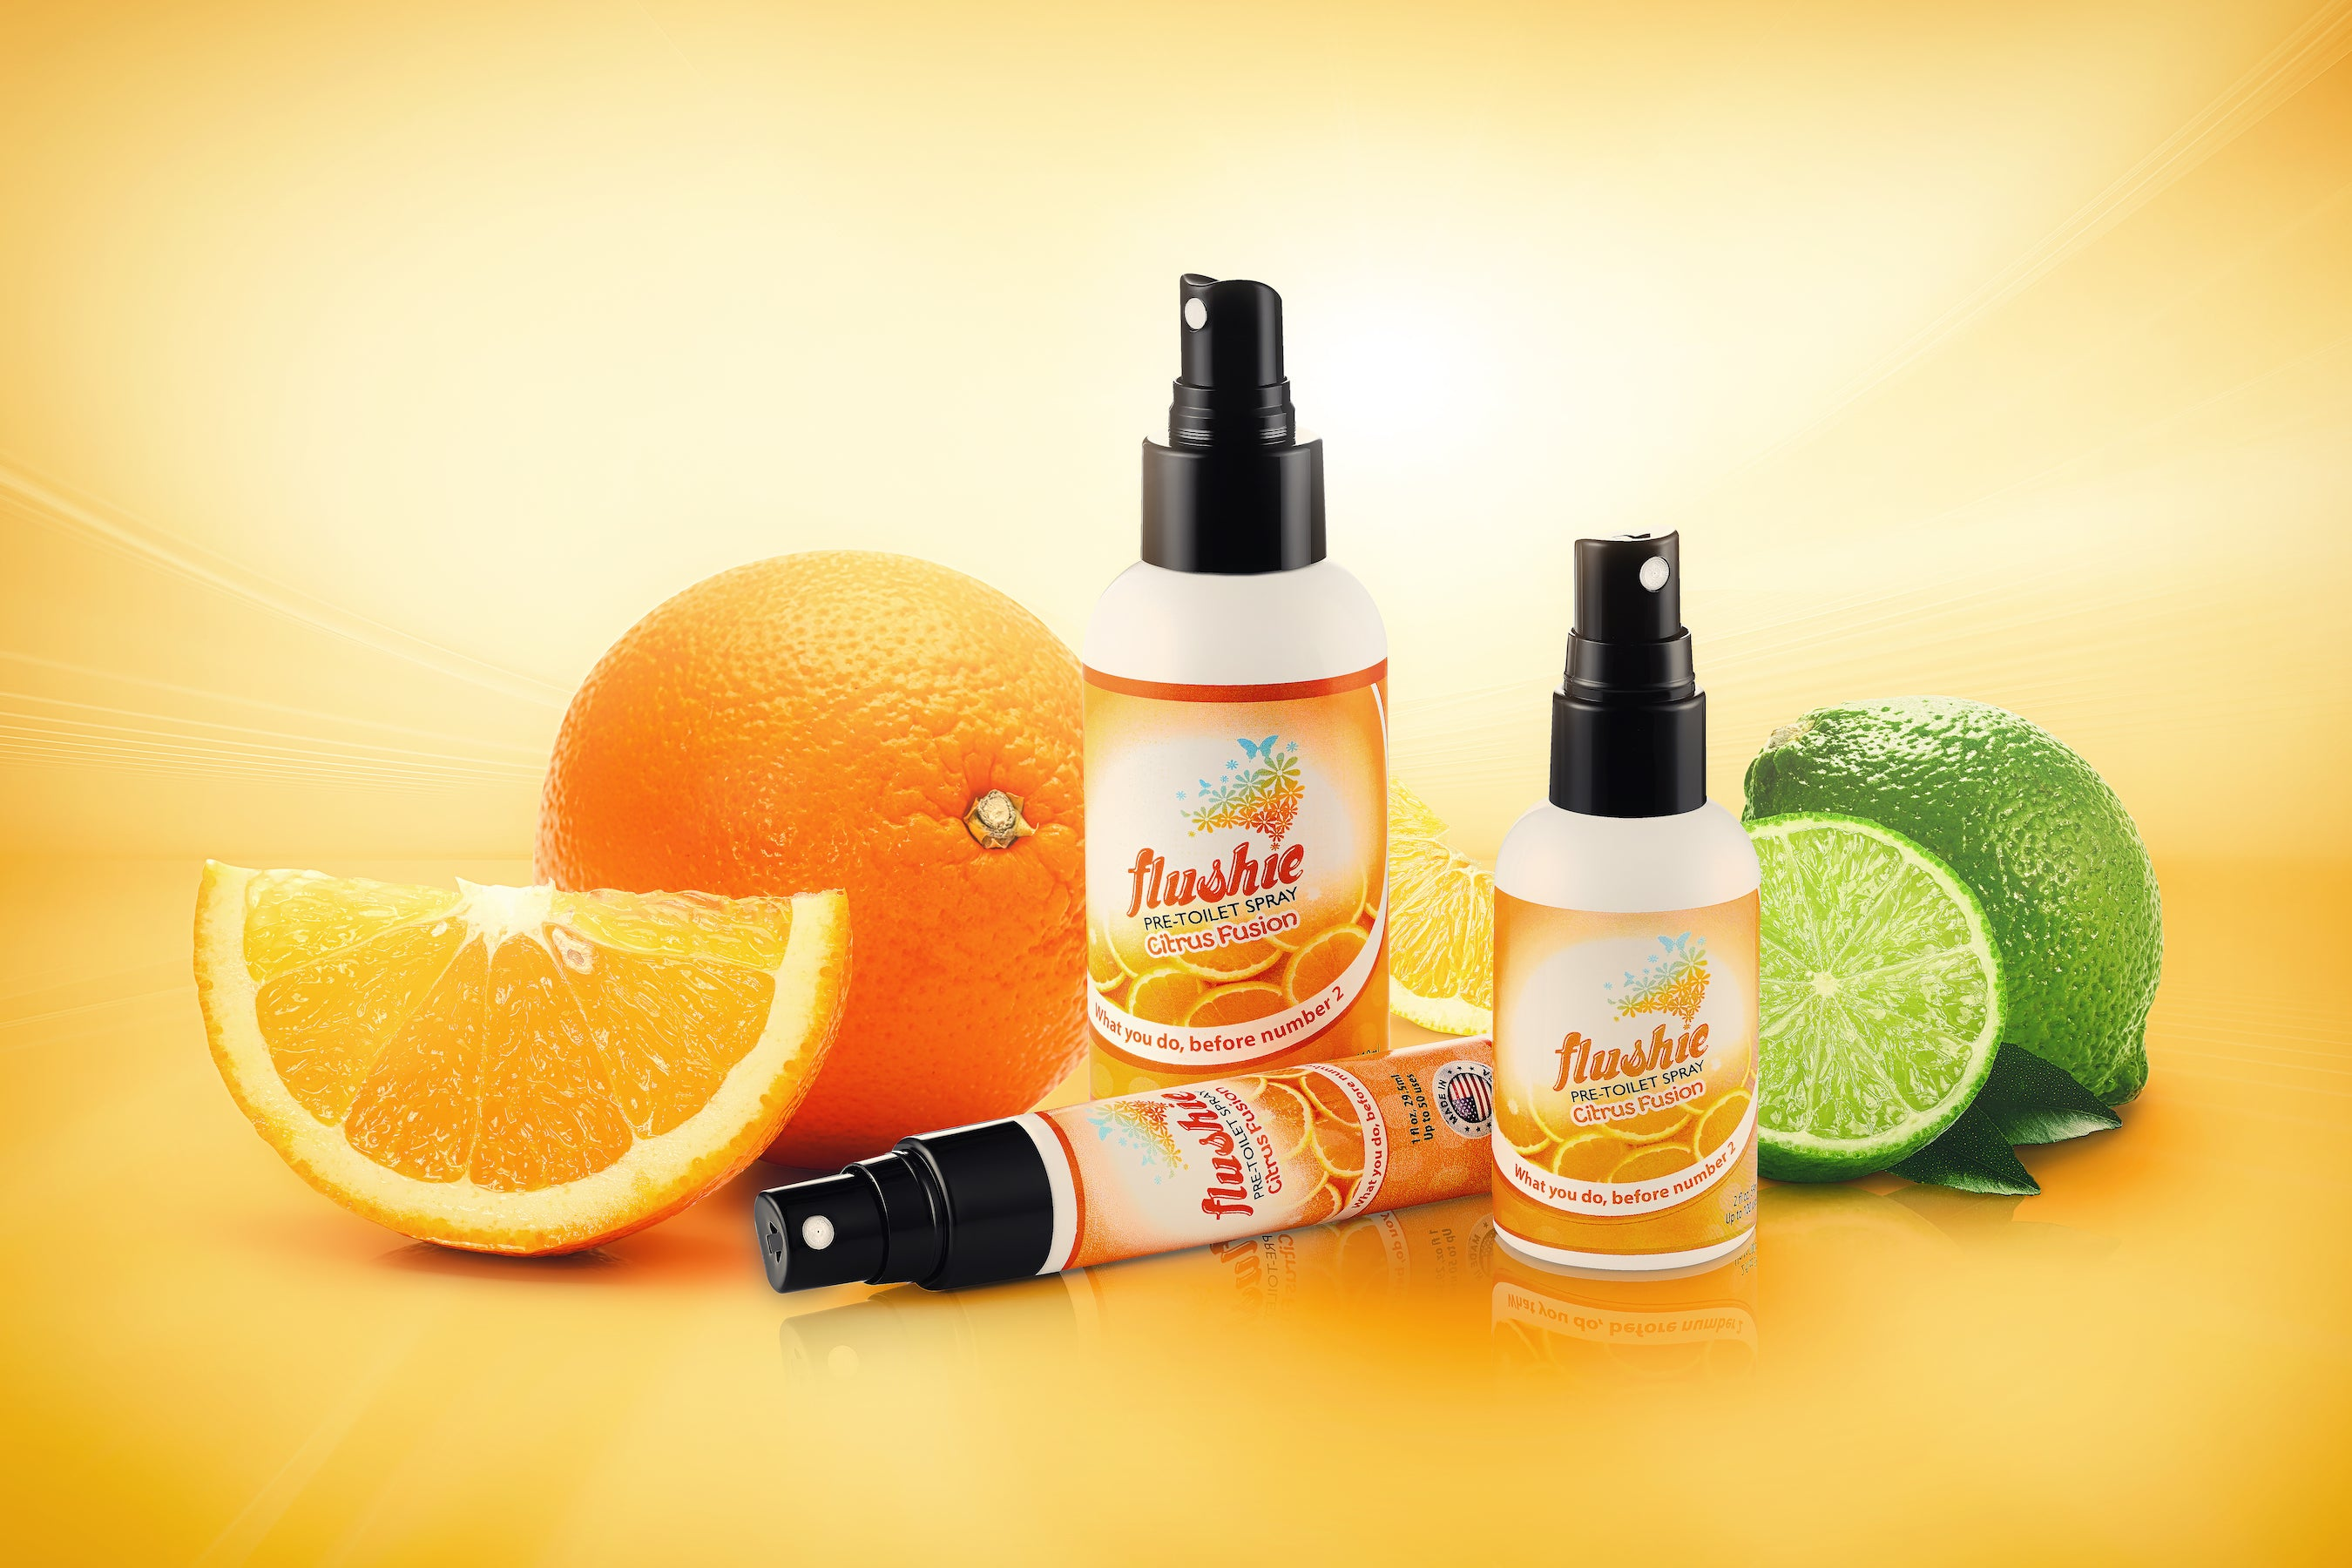 Citrus Fusion 4oz Pre-Toilet Spray